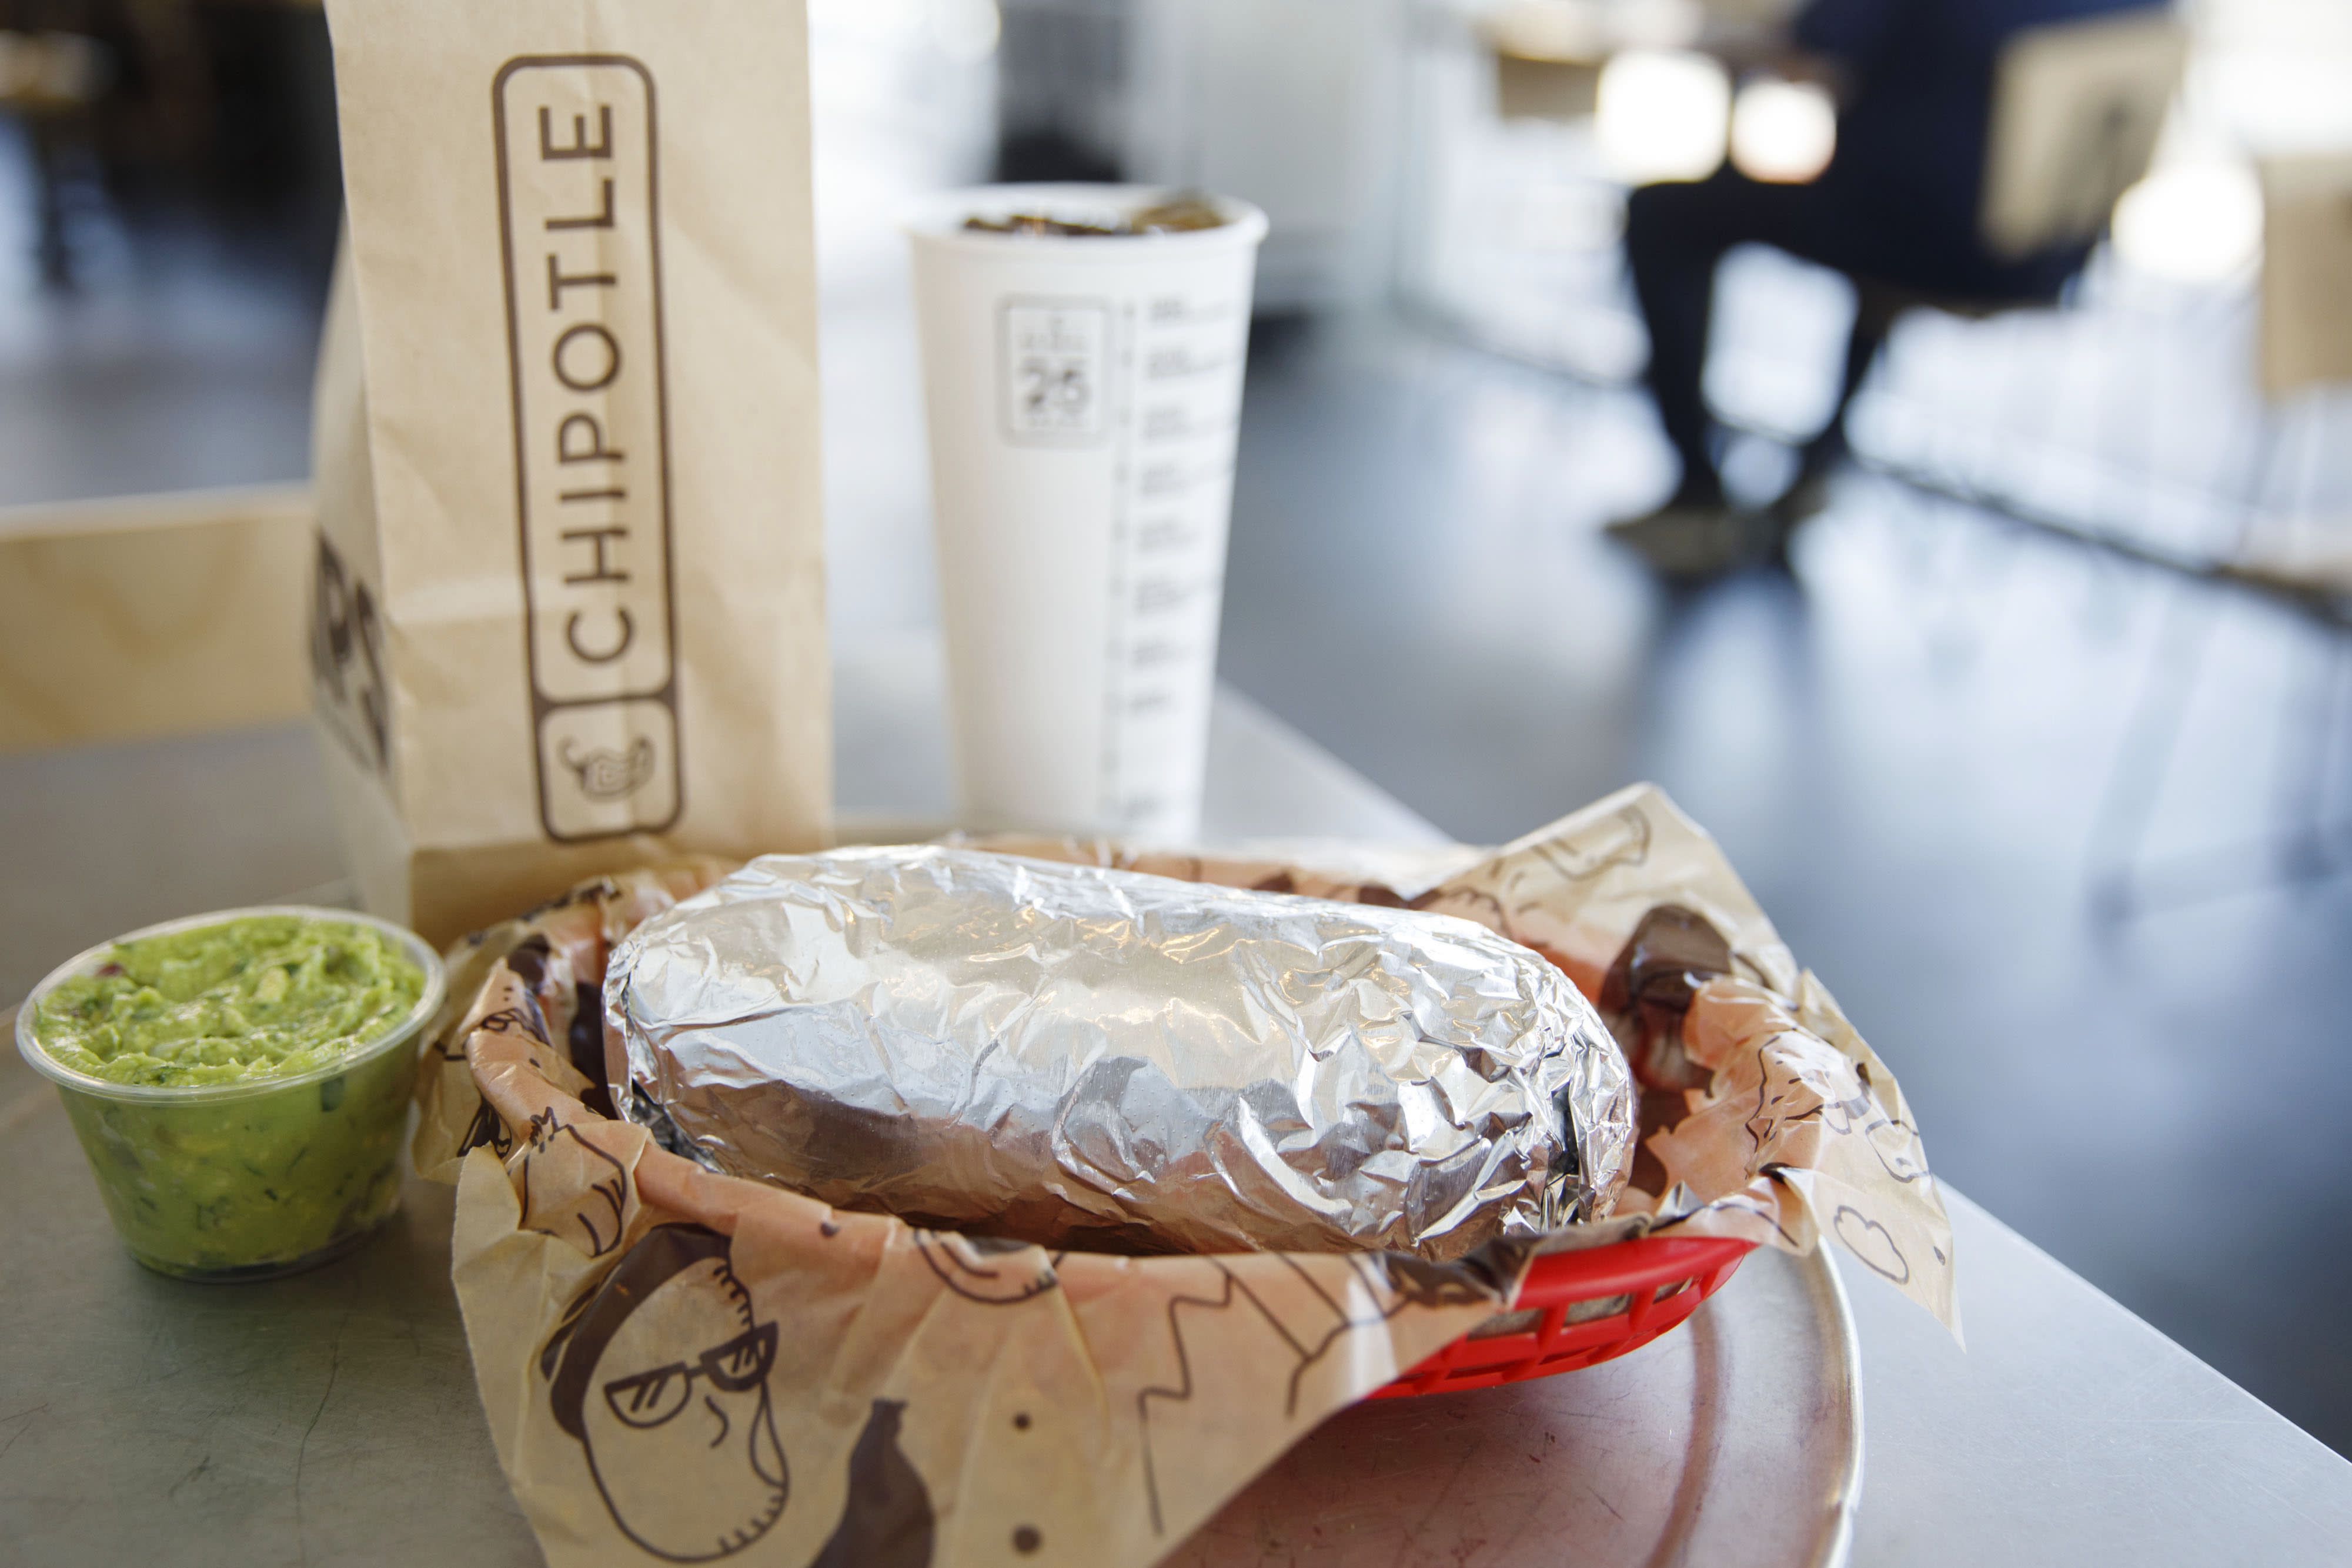 Chipotle could reach $1,000 a share after earnings, says chart analyst